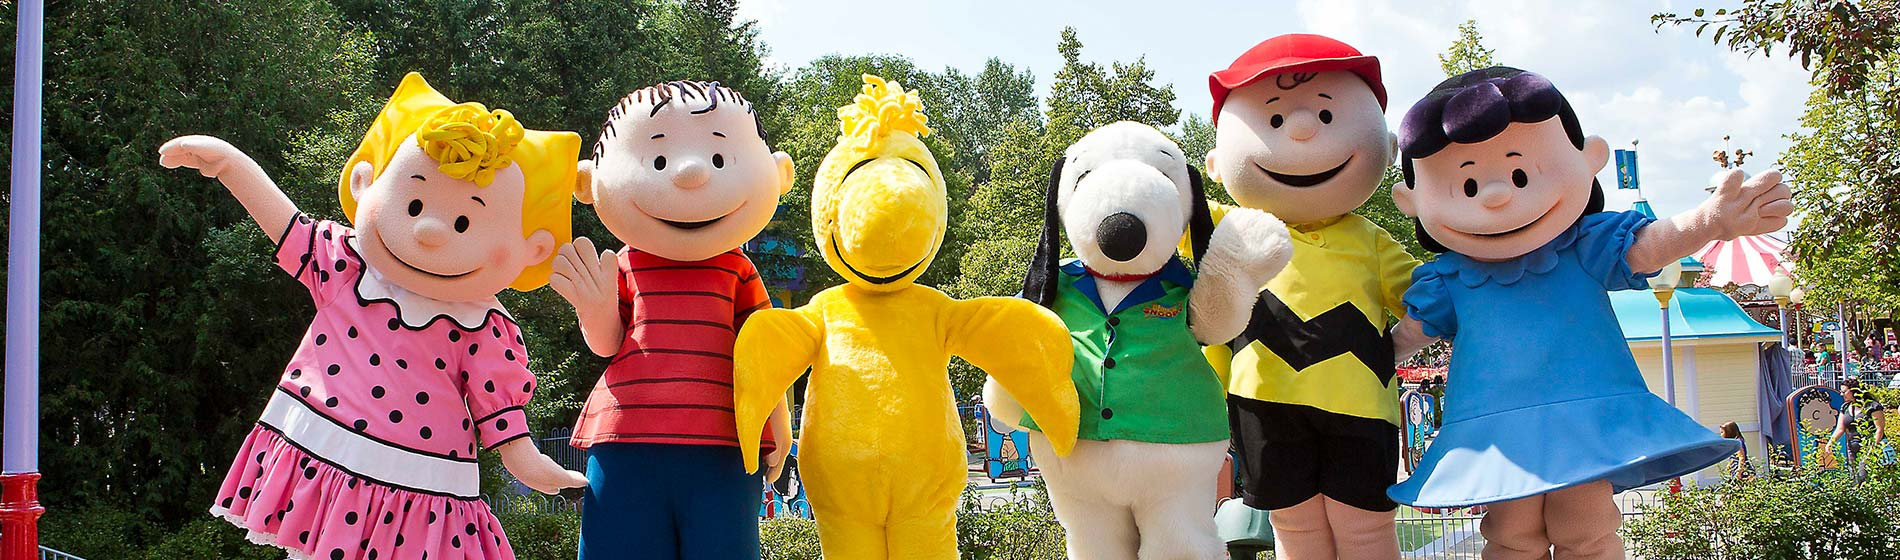 Canada's Wonderland Events